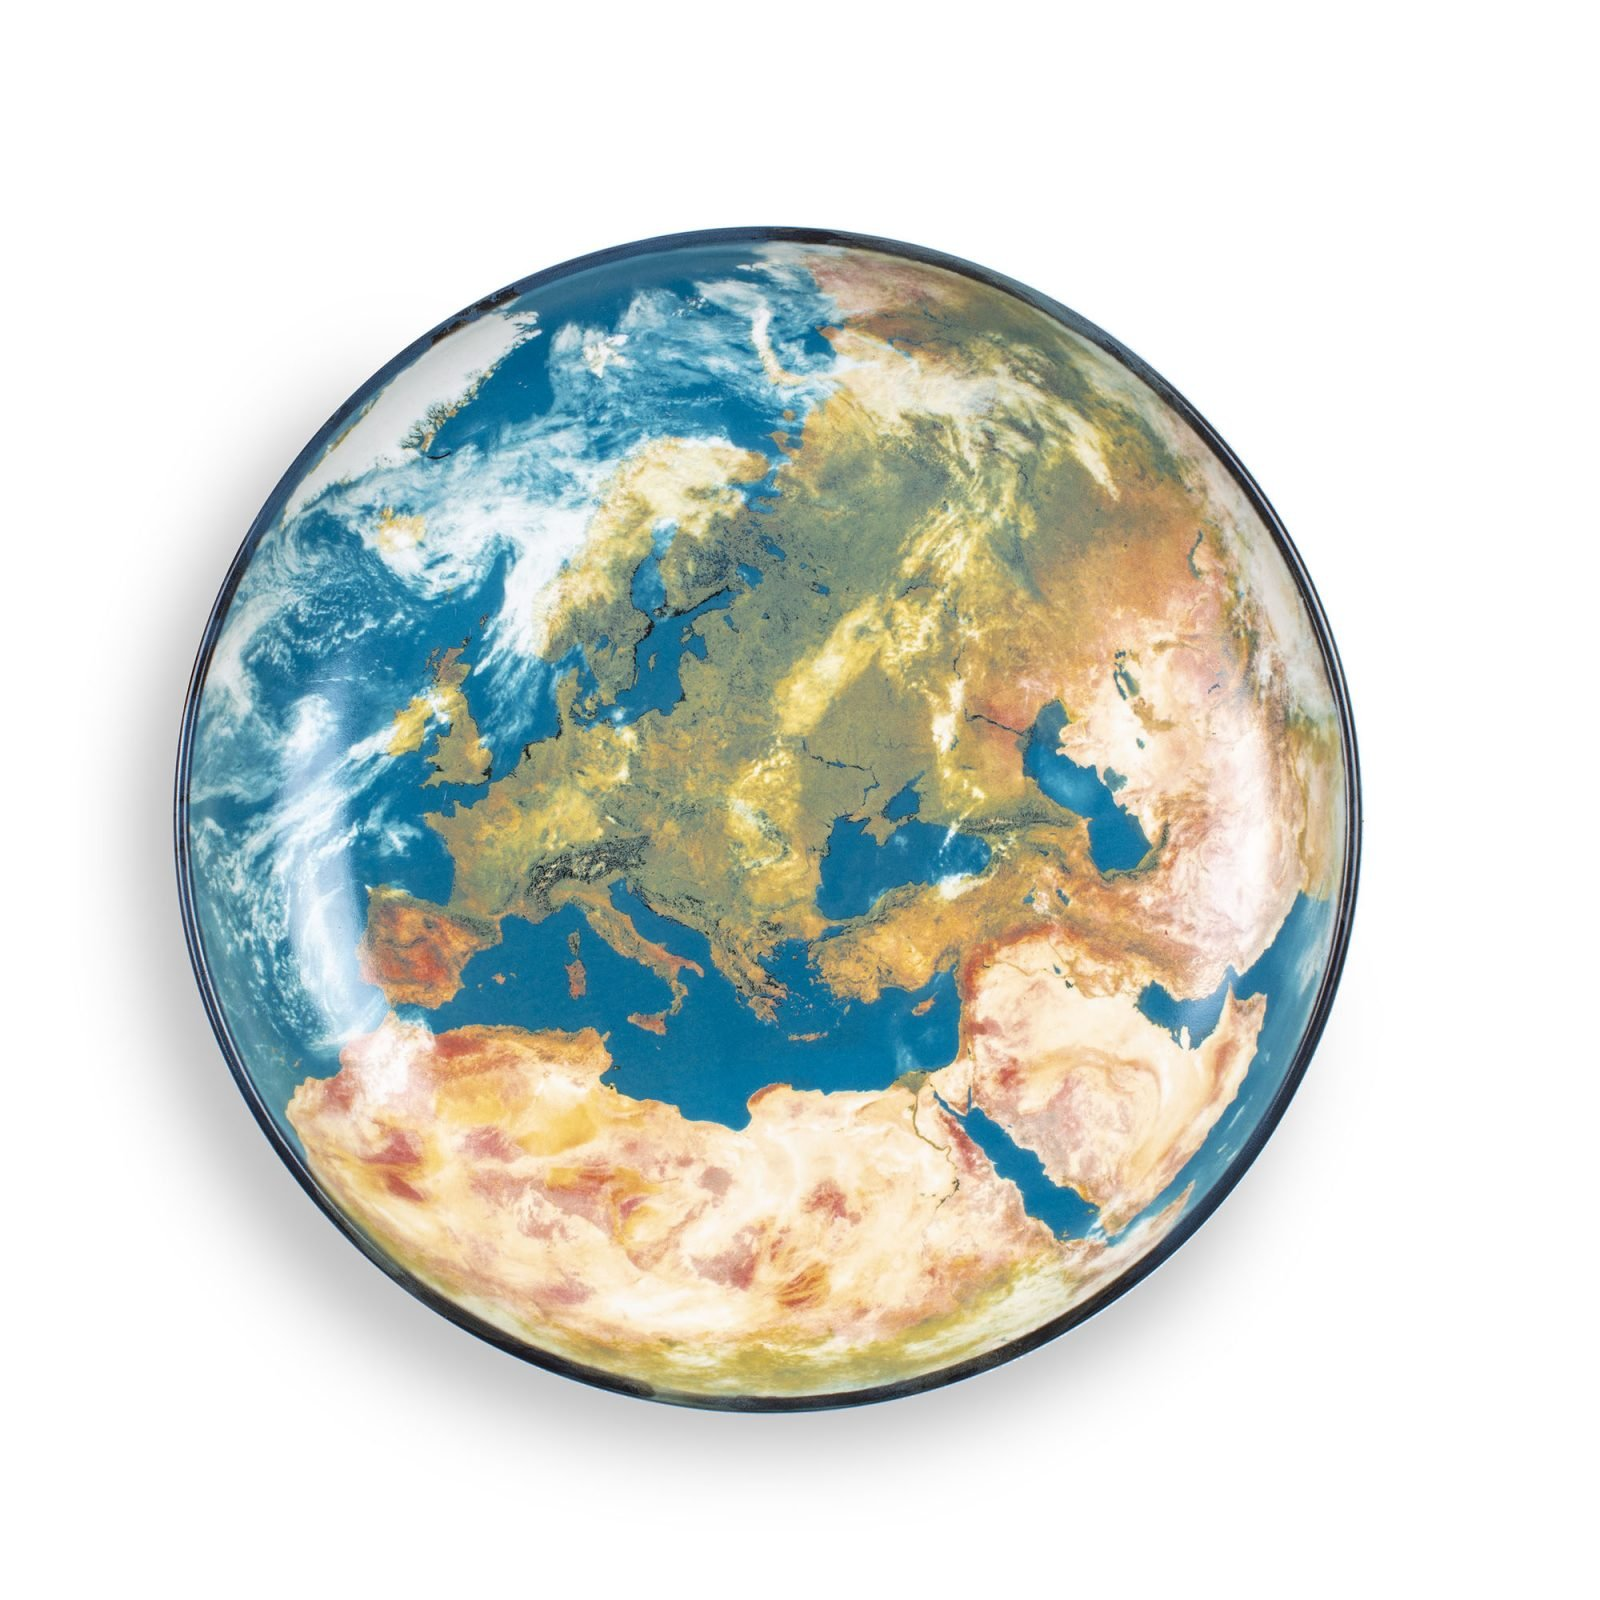 cosmic-diner-earth-europe-tray-1